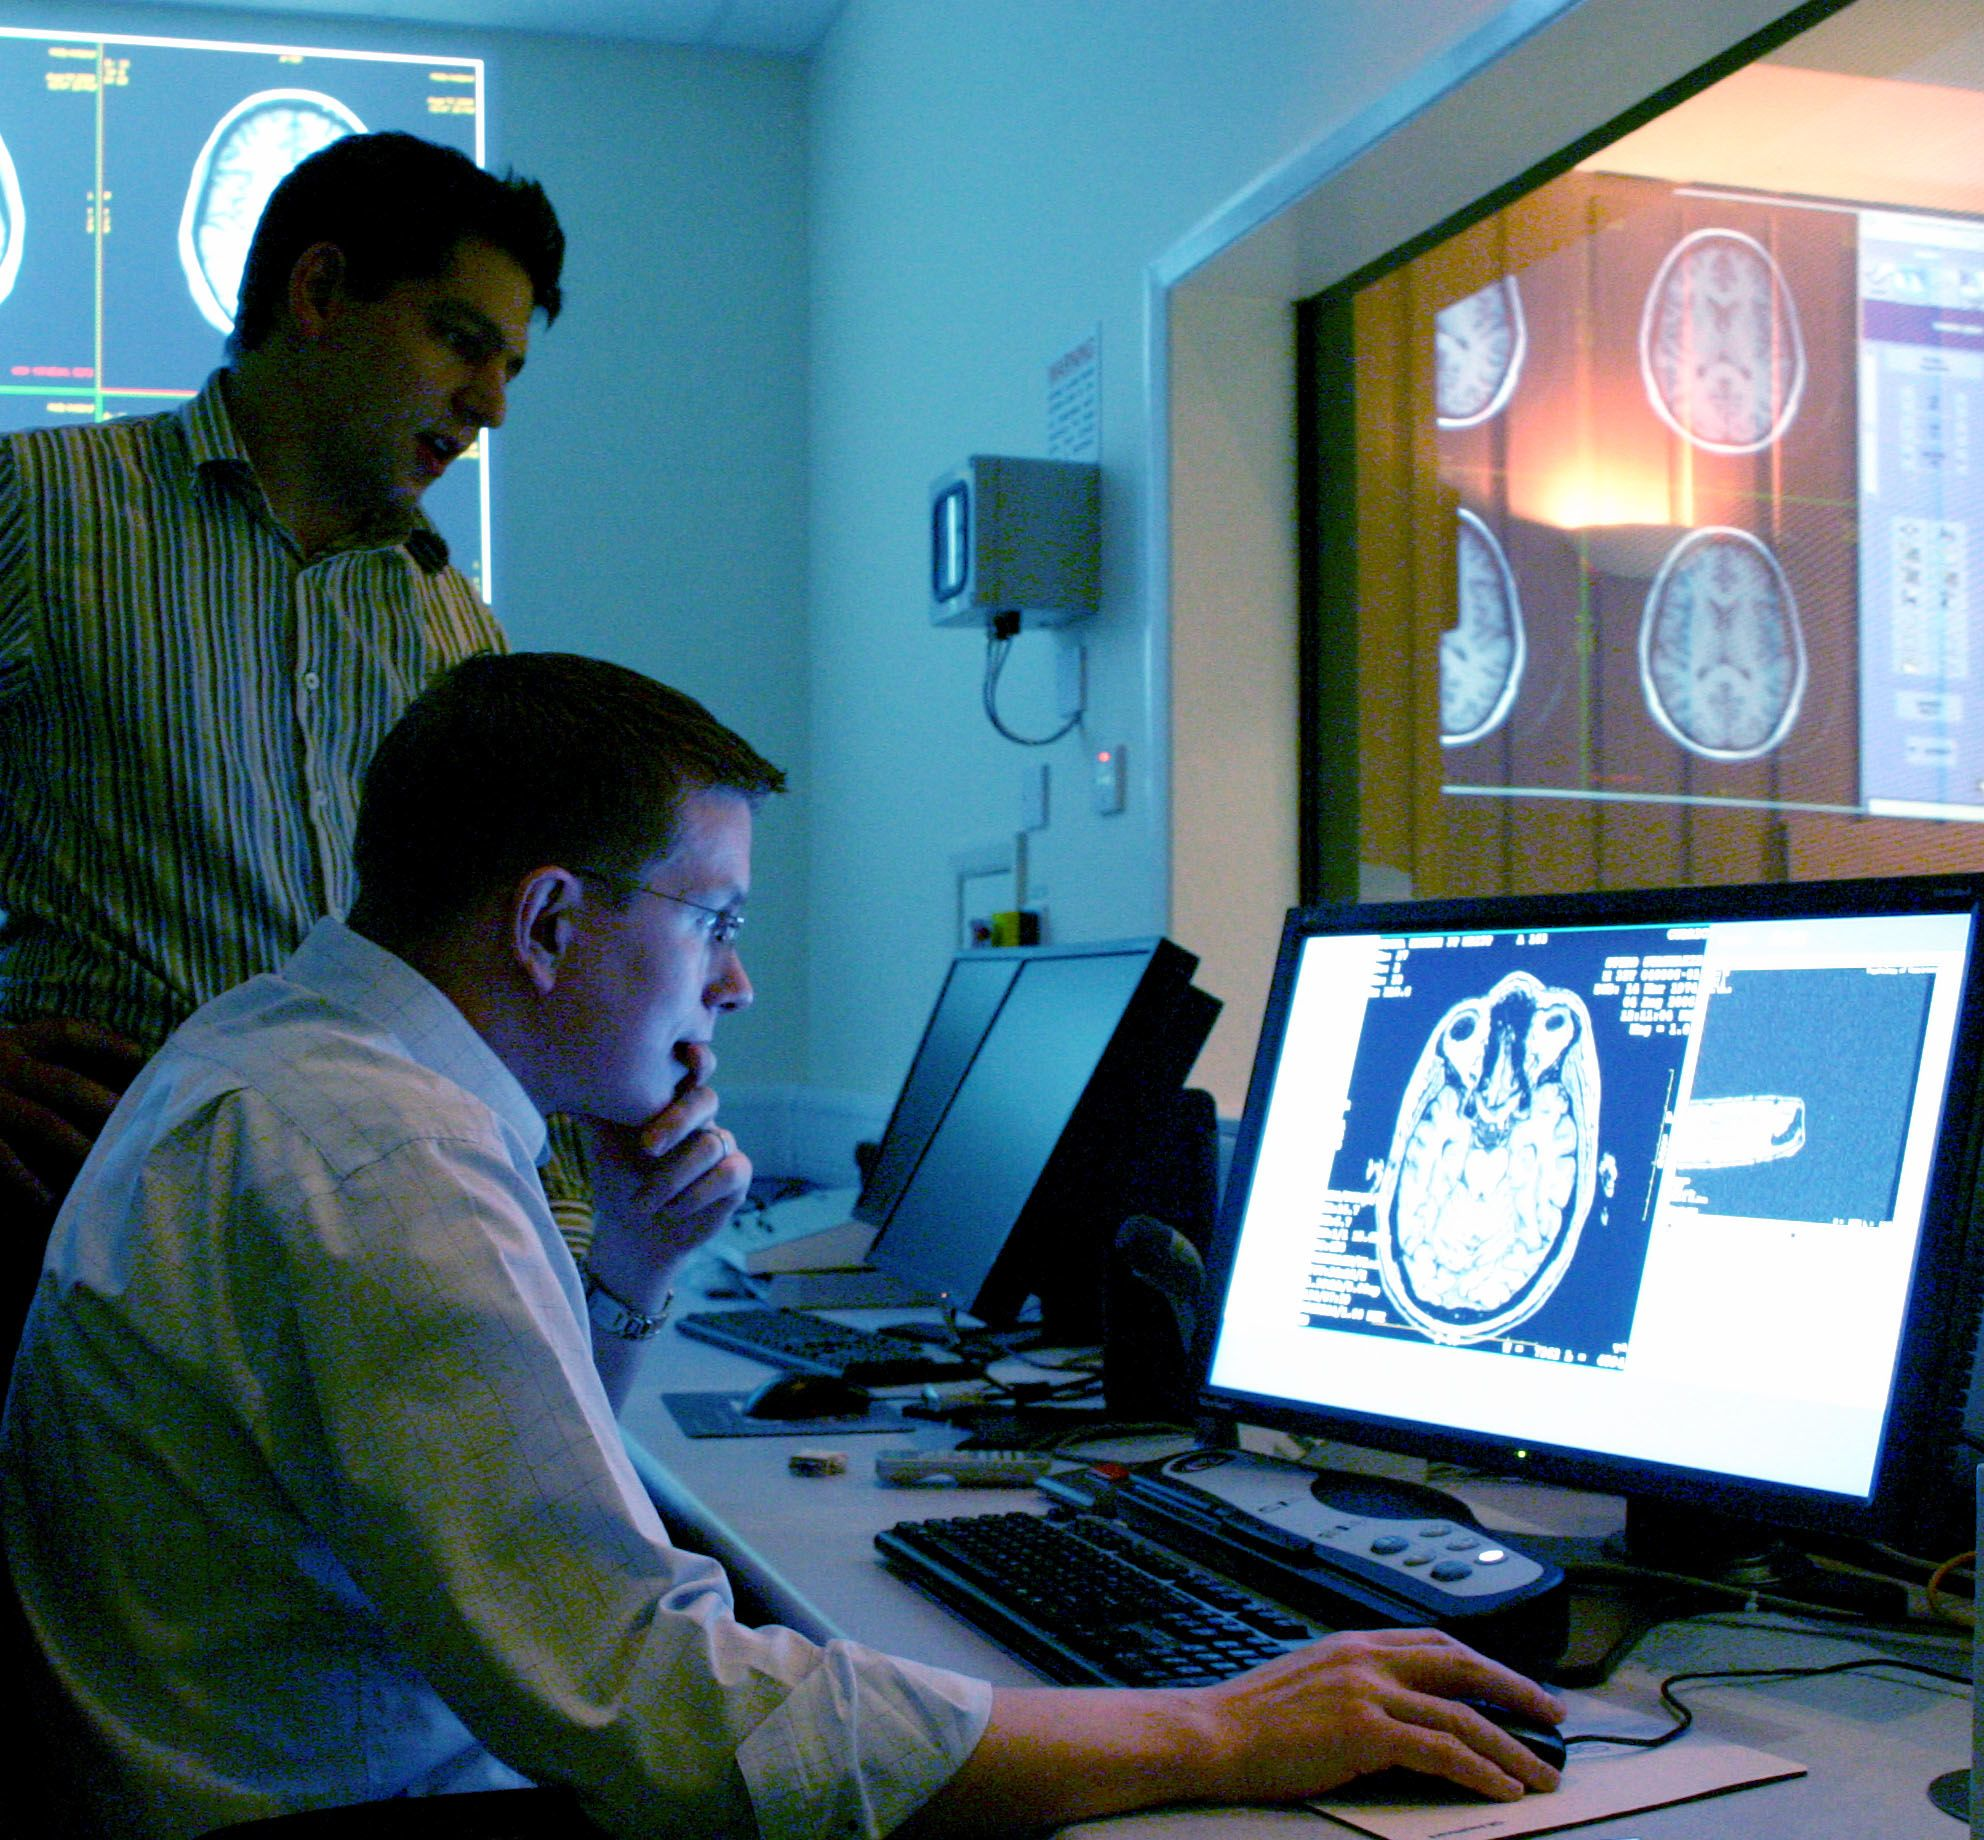 Derek Jones assesses a brain image on a computer screen as a colleague looks over his shoulder